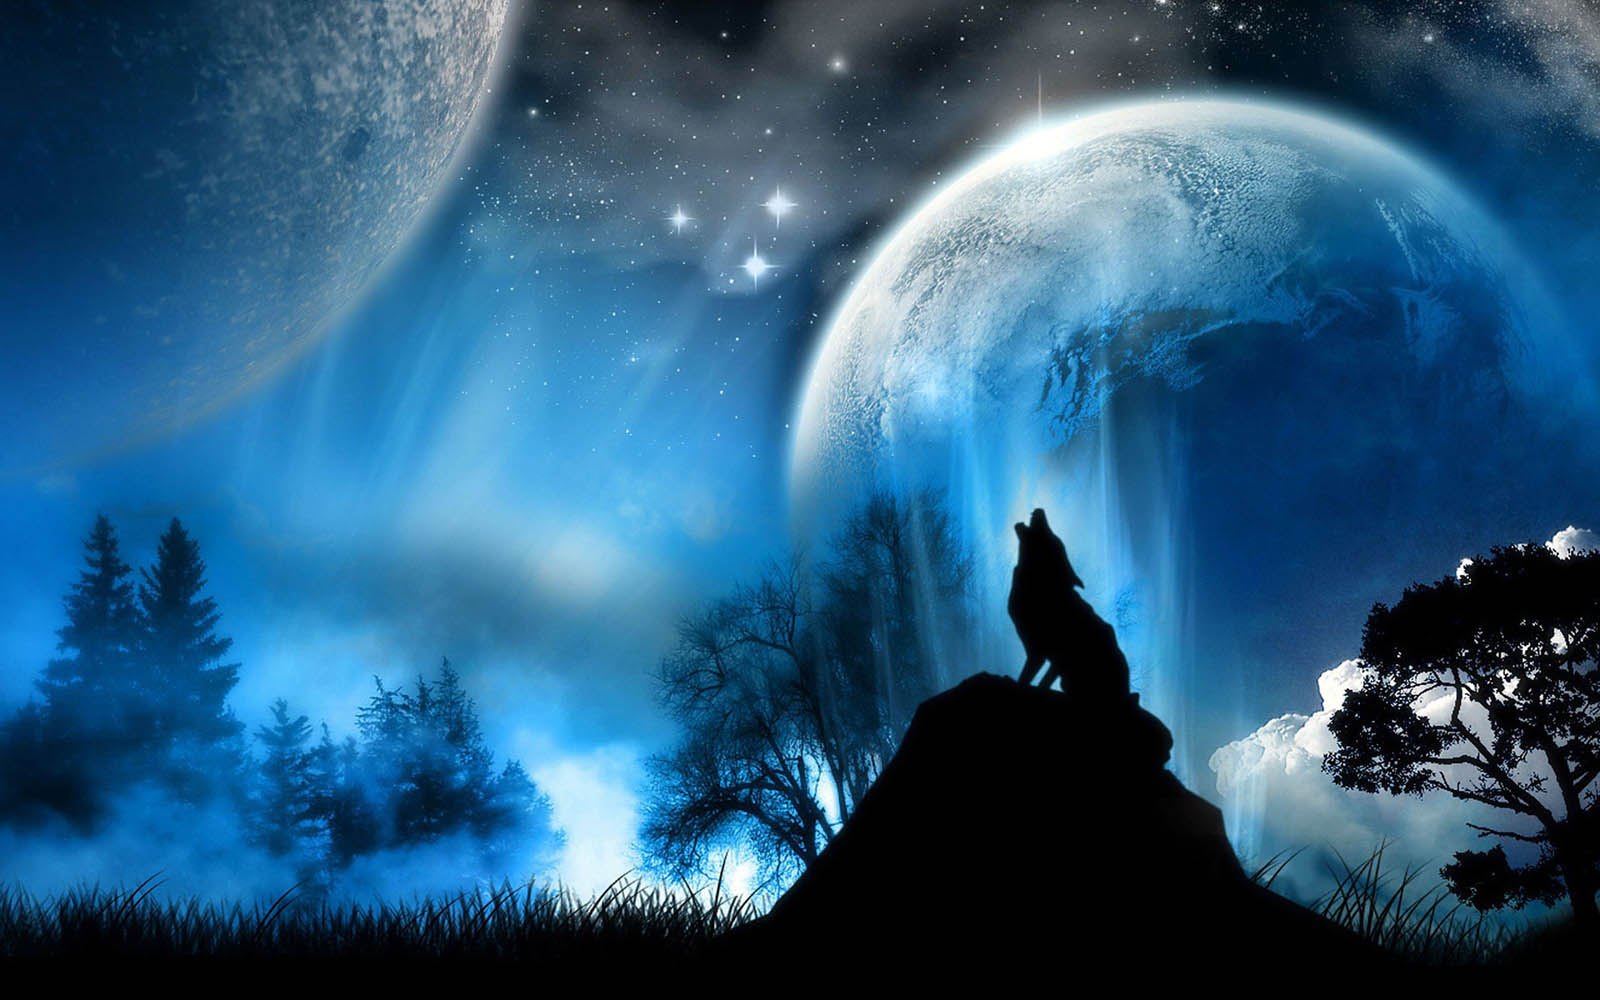 Tag Fantasy Art Scenery Wallpapers Backgrounds Photos Images and 1600x1000